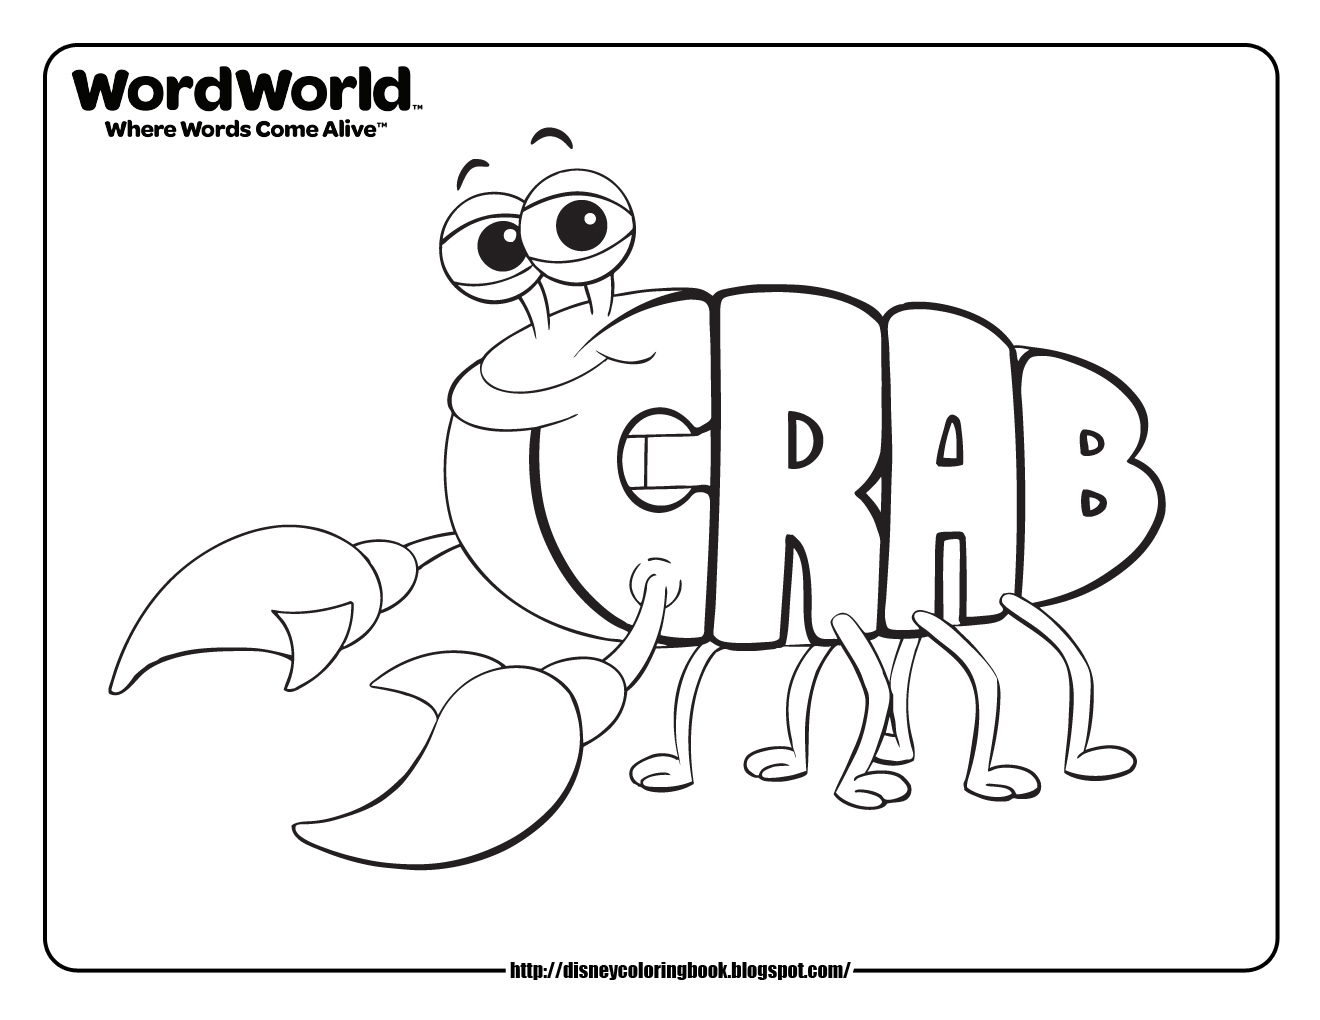 WordWorld 2: Free Disney Coloring Sheets